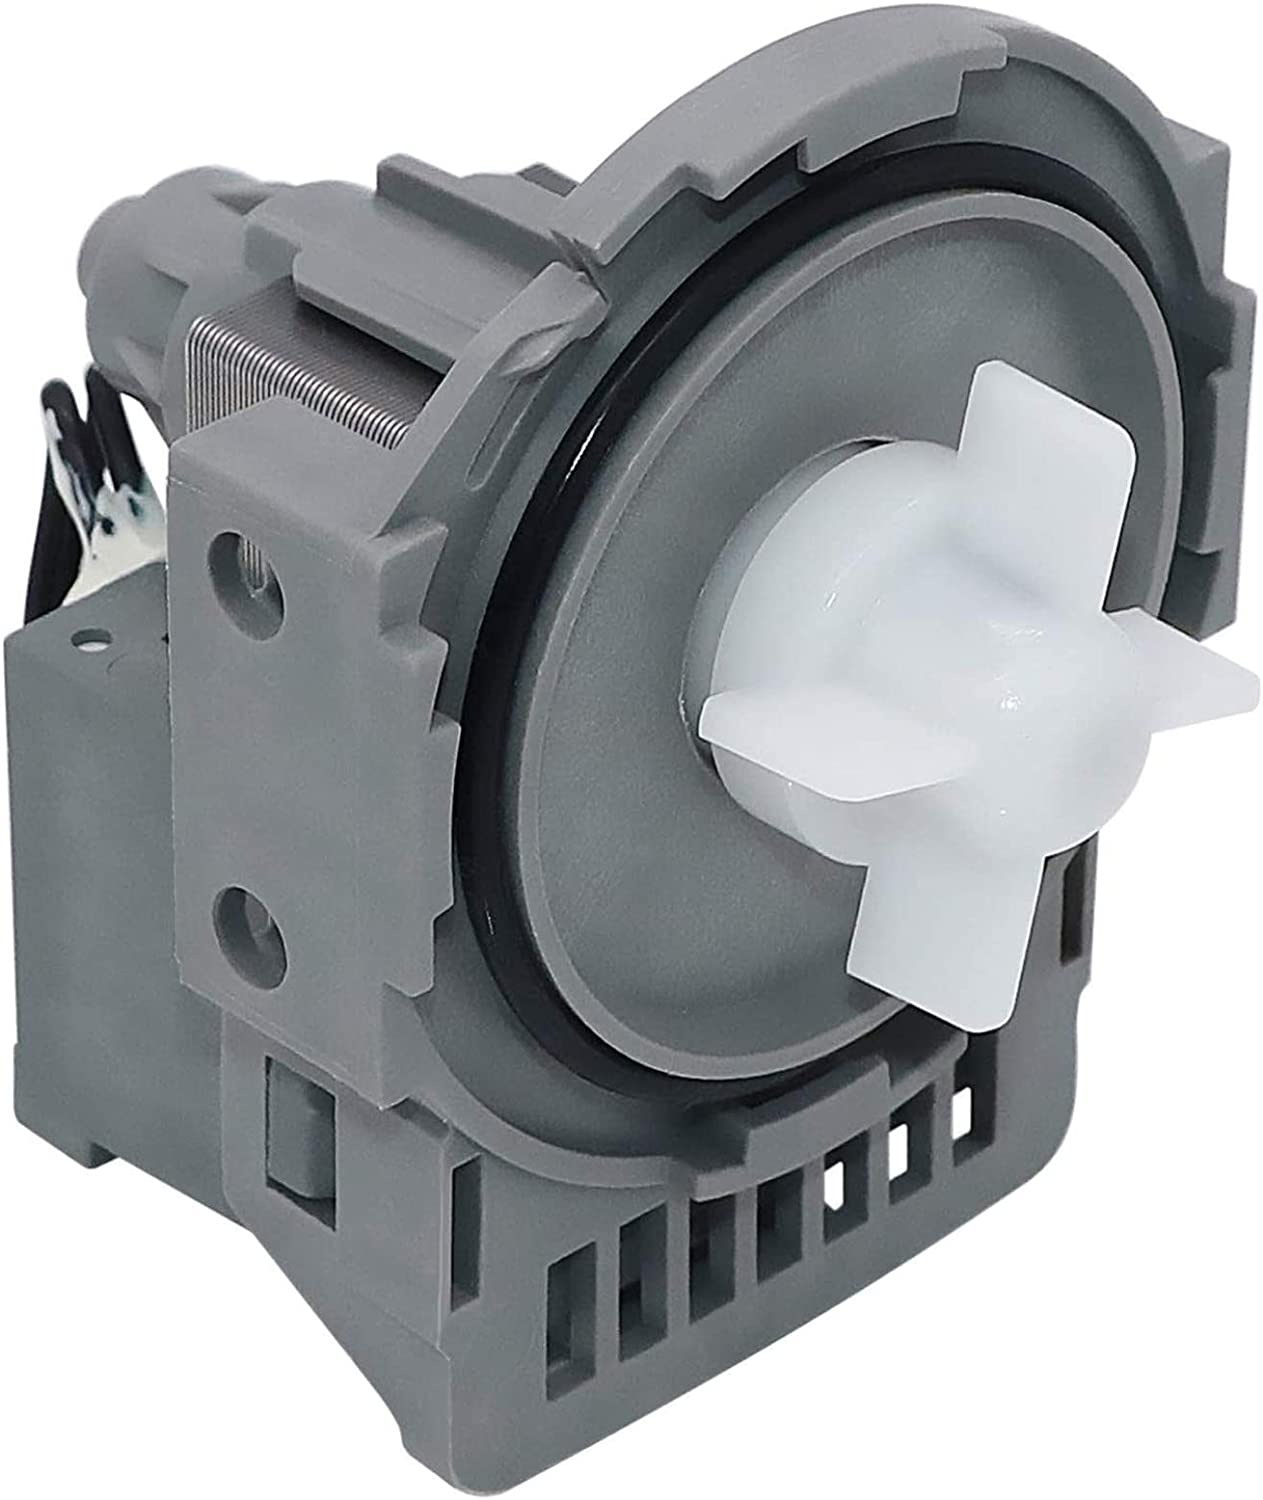 Beaquicy DD31-00005A Dishwasher Drain Pump Replacement for Samsung Dishwasher